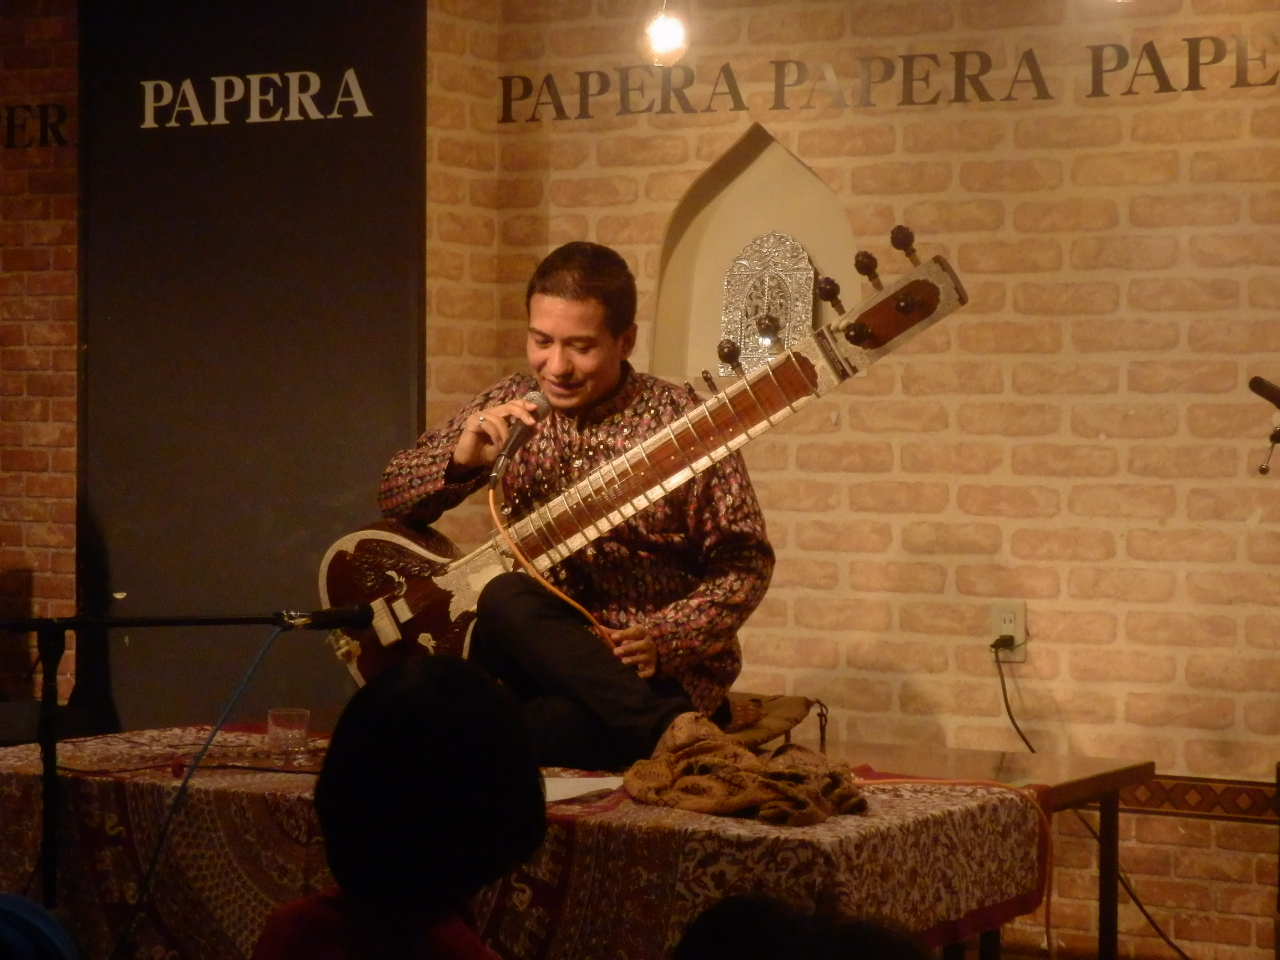 12/4(金)『SAWAN JOSHI SITAR LIVE ! WITH HOT & SPACY CURRY』_f0076907_14365748.jpg